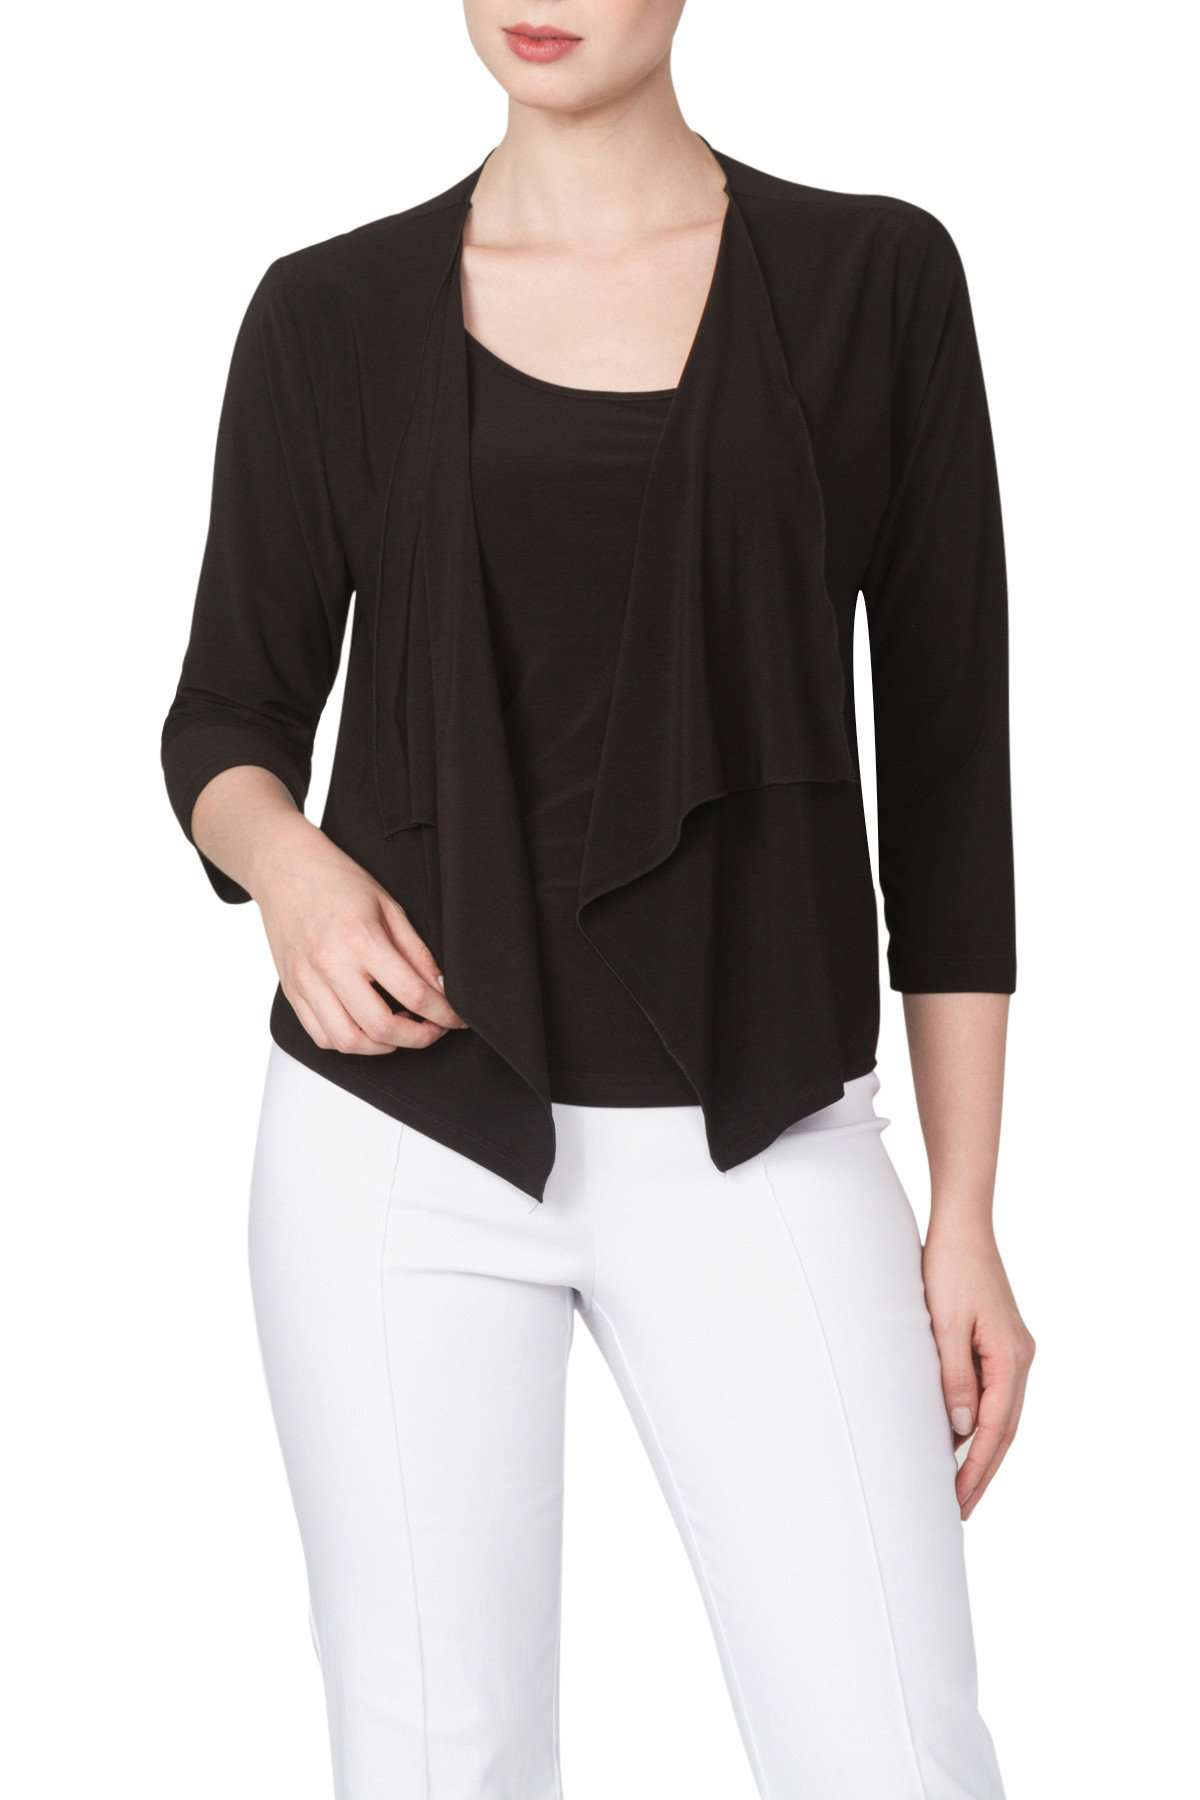 Bolero Jacket in Black Quality Knit Fabric -Made in Canada - Yvonne Marie